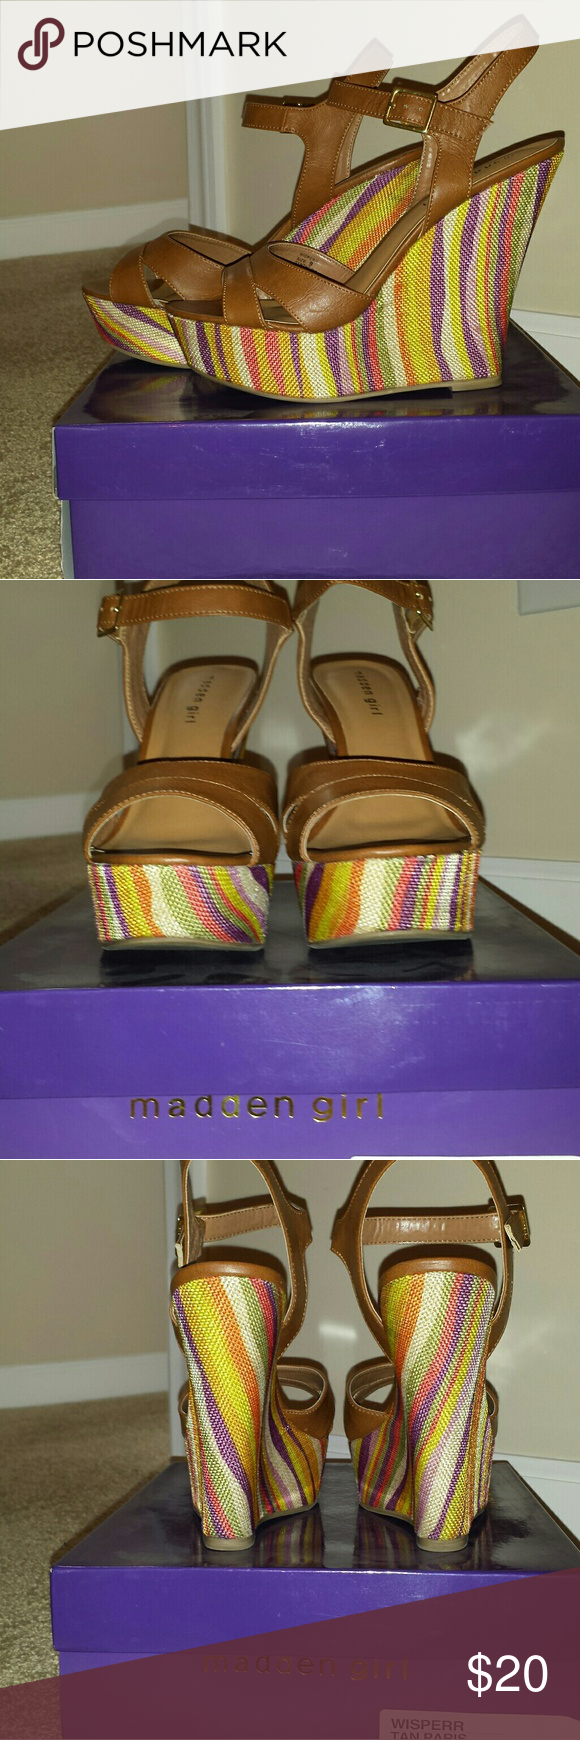 Madden Girl Wisperr Wedges. Offers welcome. Beautiful wedge sandals. Worn several times. In good condition. Offers welcome. Madden Girl Shoes Wedges